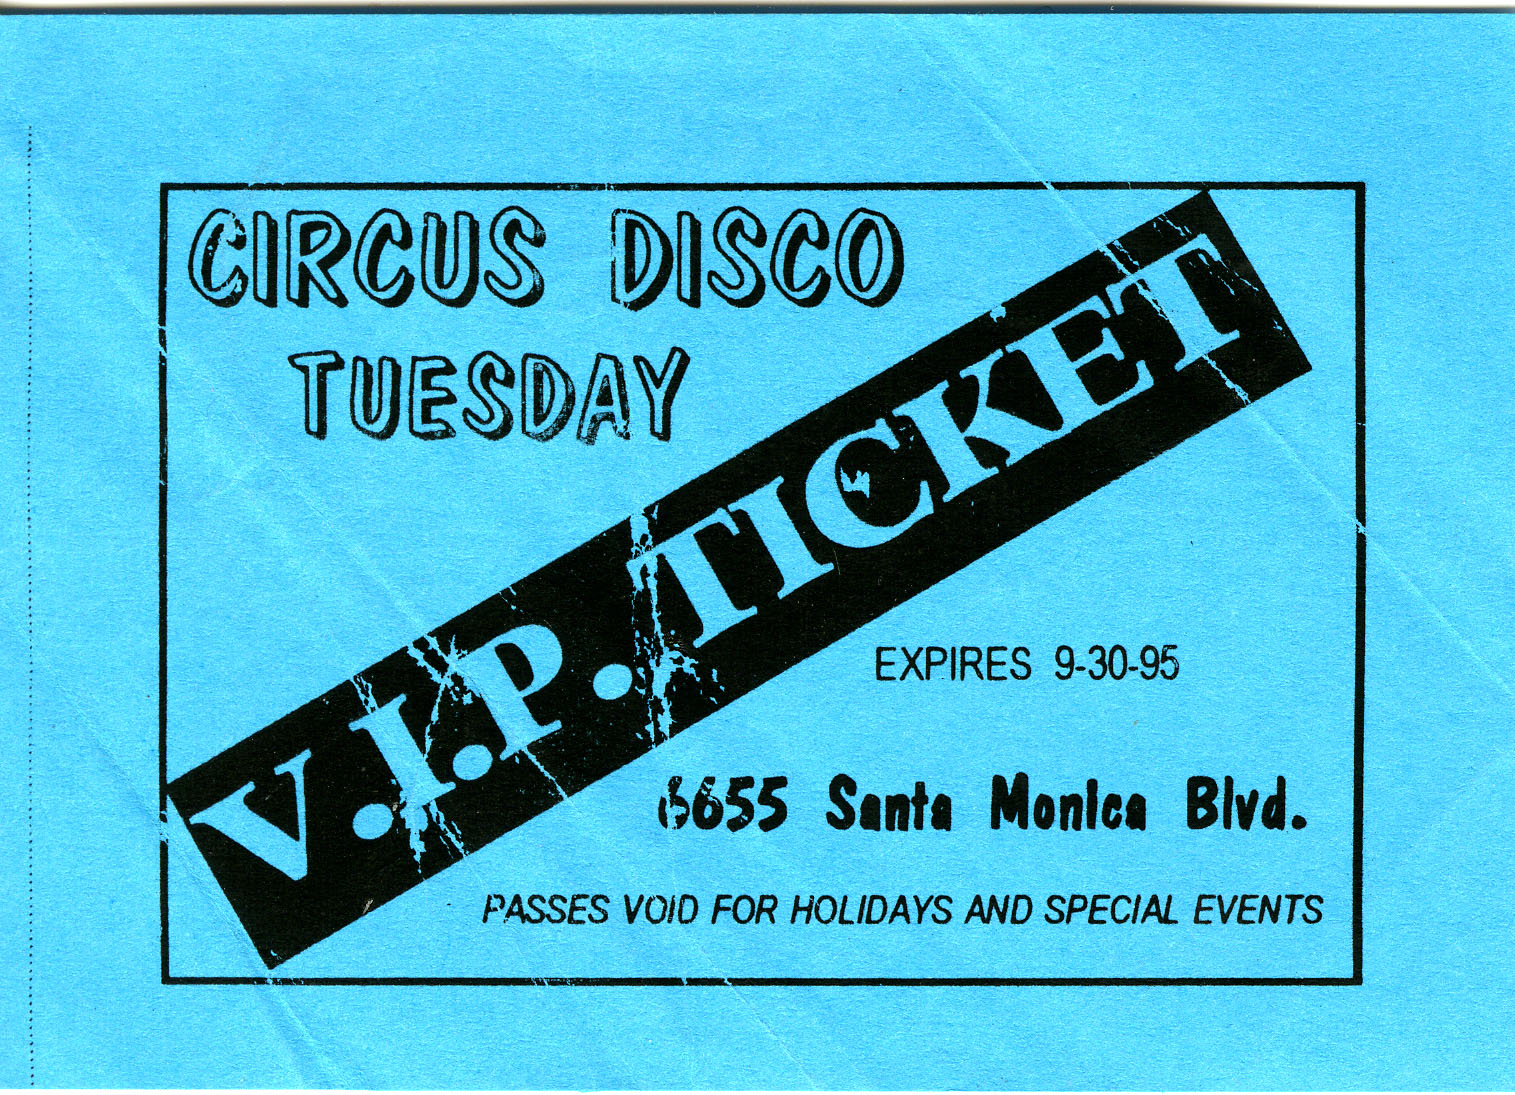 Circus Disco VIP Ticket